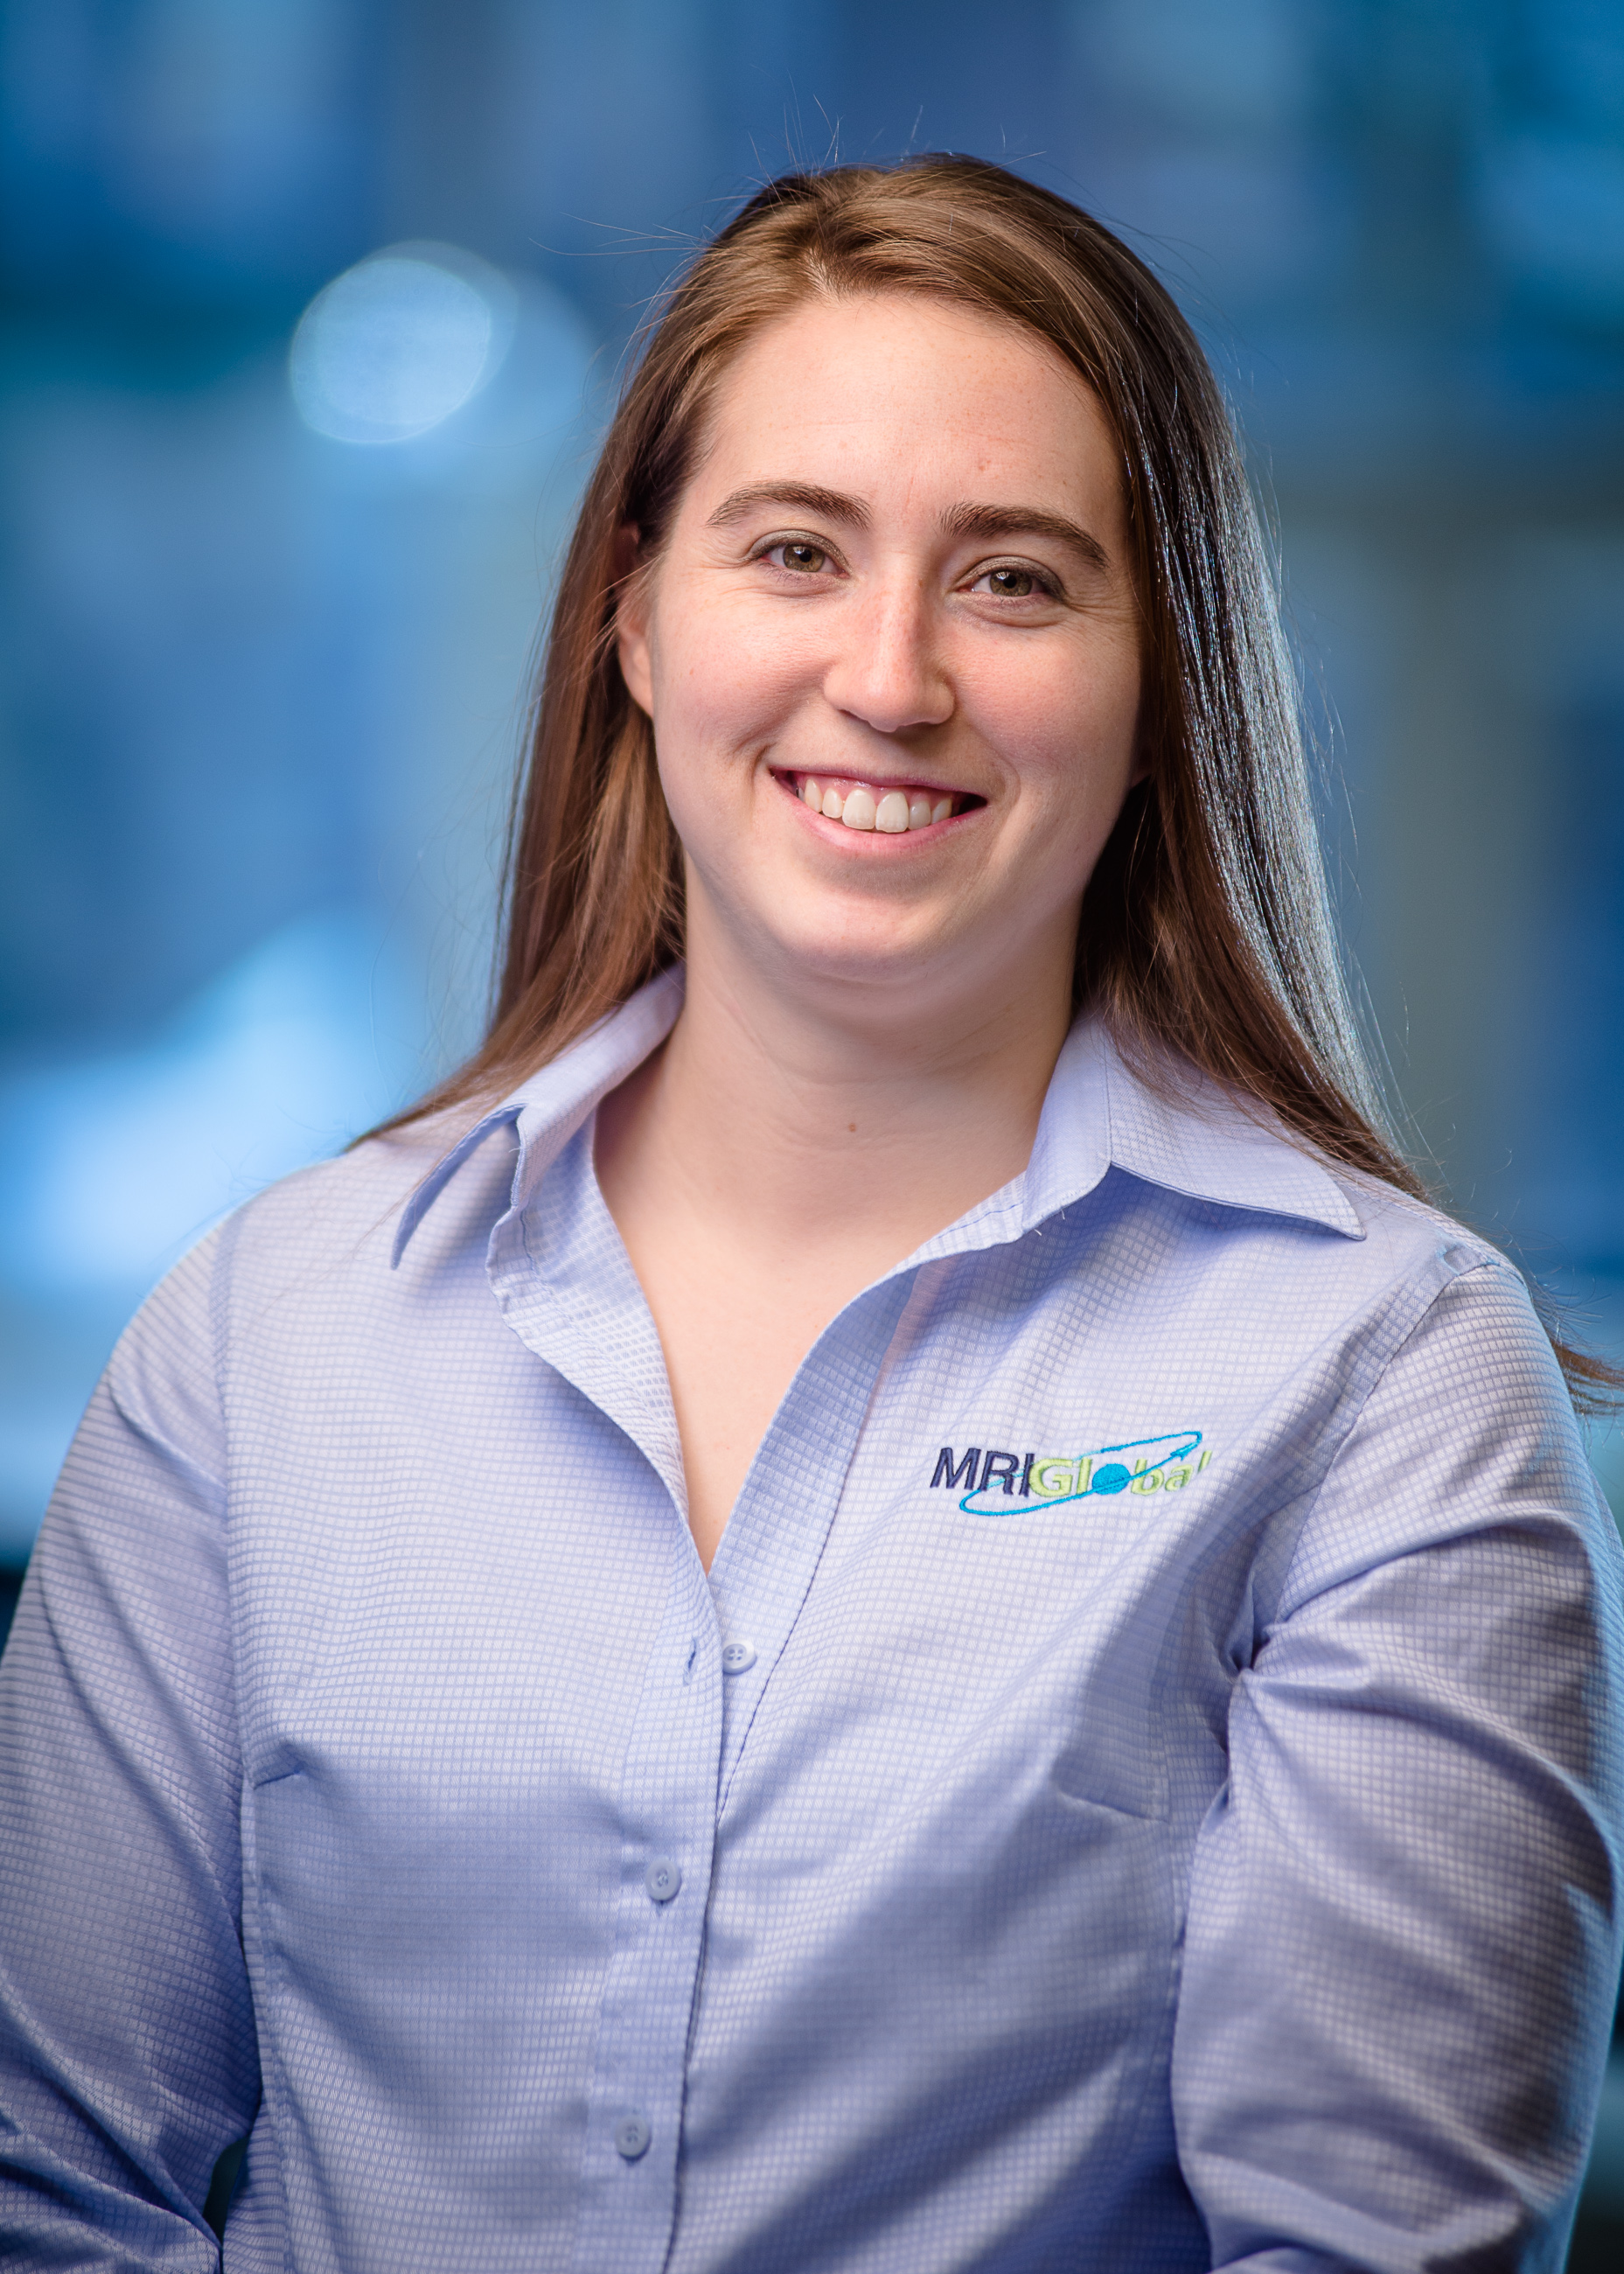 Christa D. Court, Ph.D., Staff Scientist at MRIGlobal and a B&E alumna was selected for the class of 2014 for The State Journal's Generation Next: 40 under 40 award. February 4, 2015.  (J. Alex Wilson - WVU College of Business and Economics)